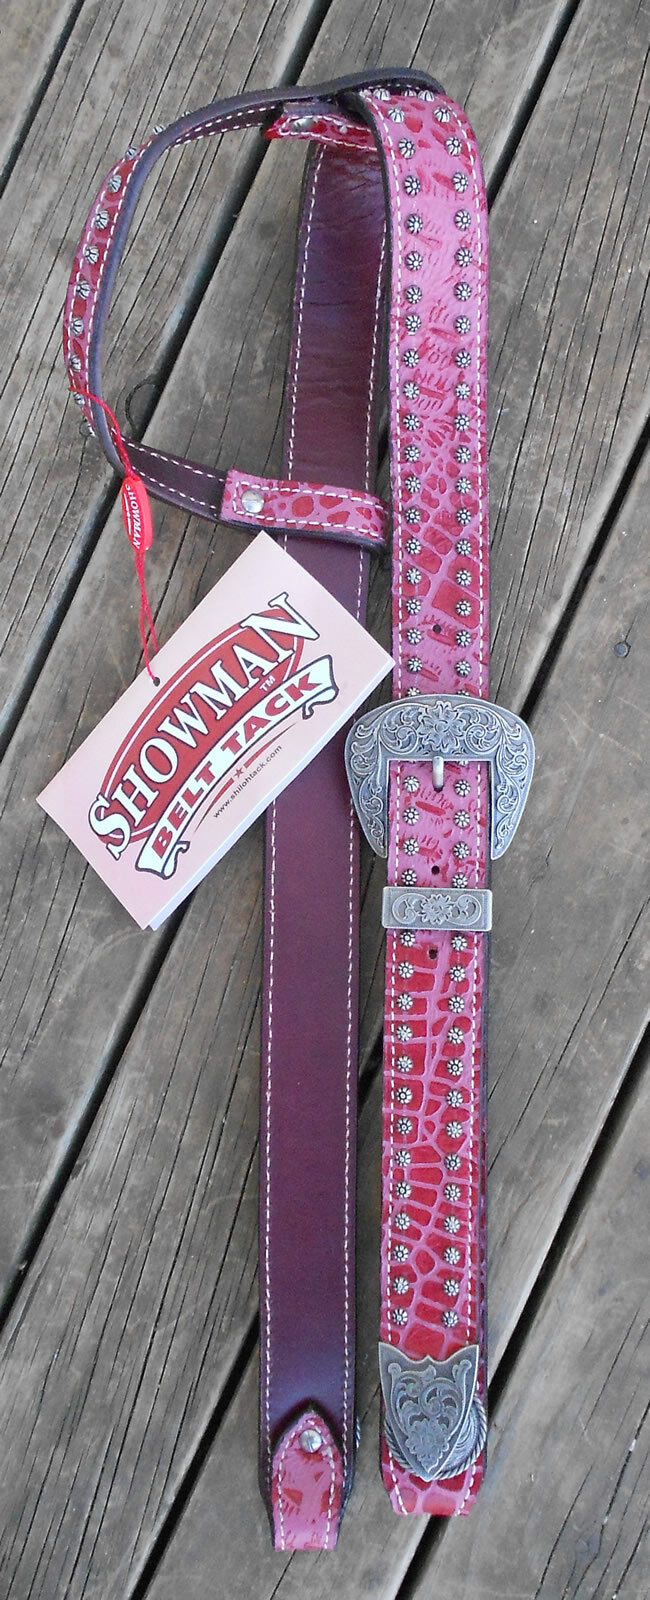 BELT STYLE ALLIGATOR PRINT HEADSTALL BRAND  NEW FULL SIZE  new branded